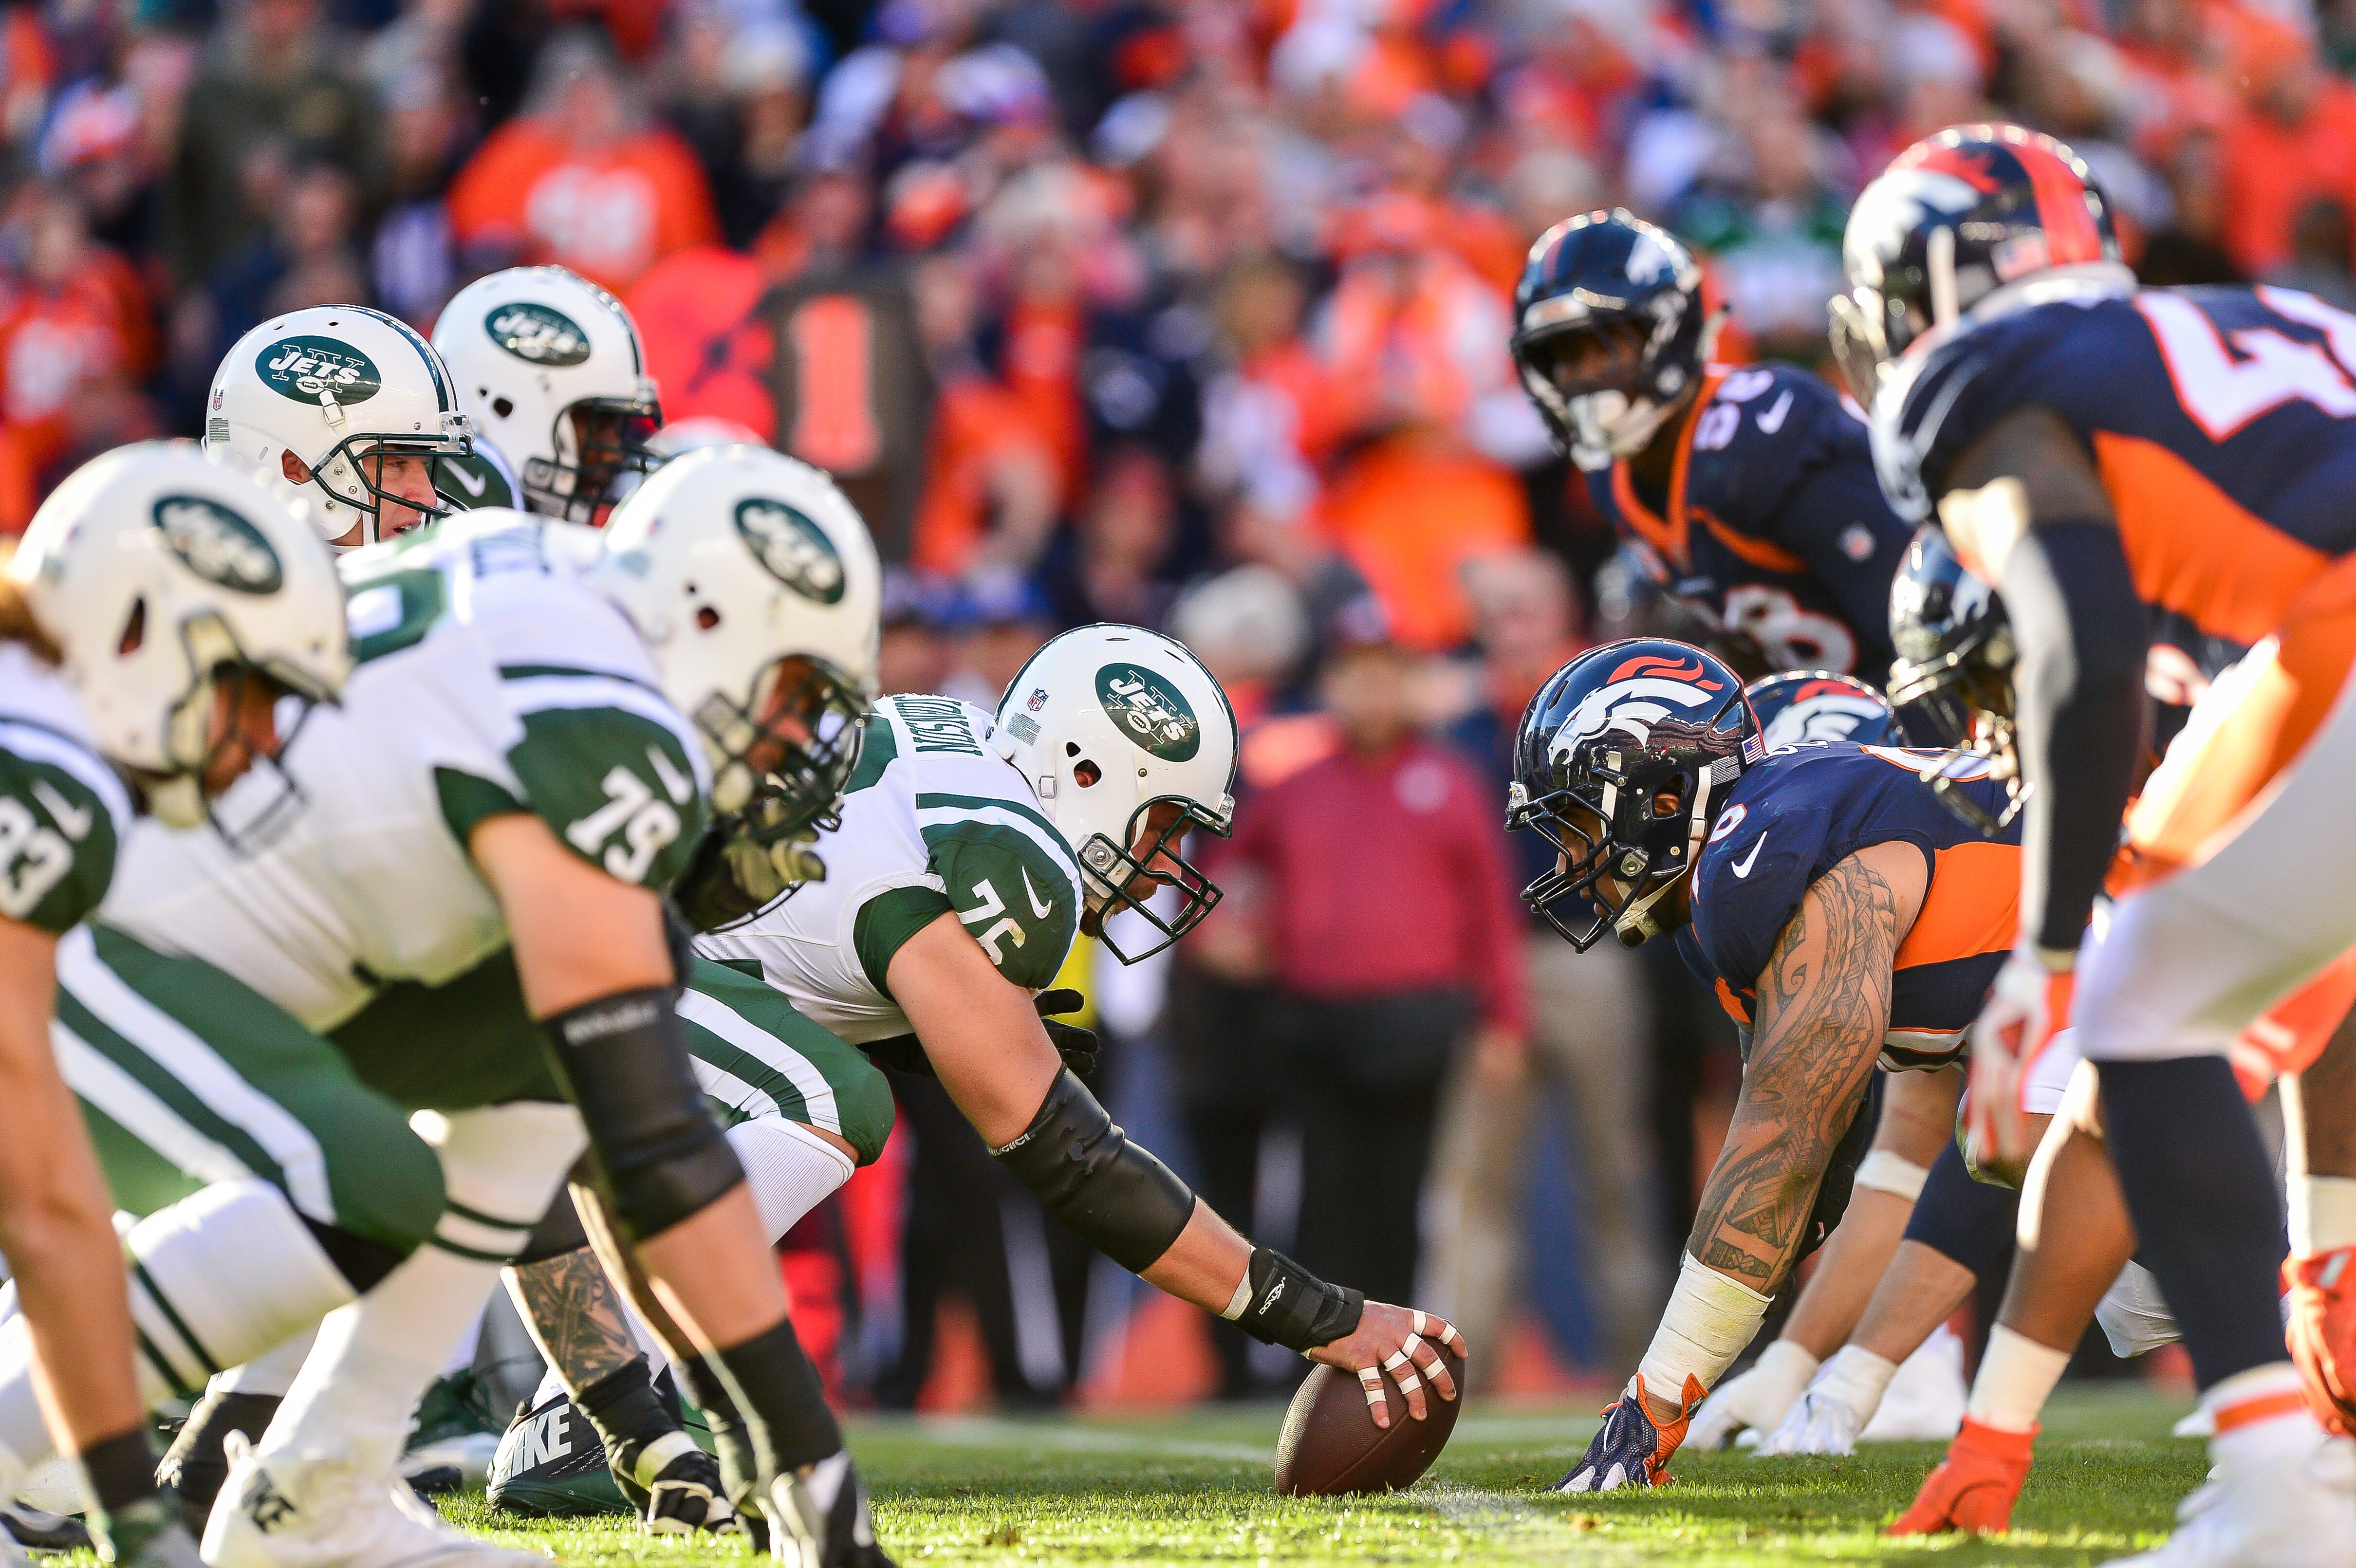 889742842-new-york-jets-v-denver-broncos.jpg